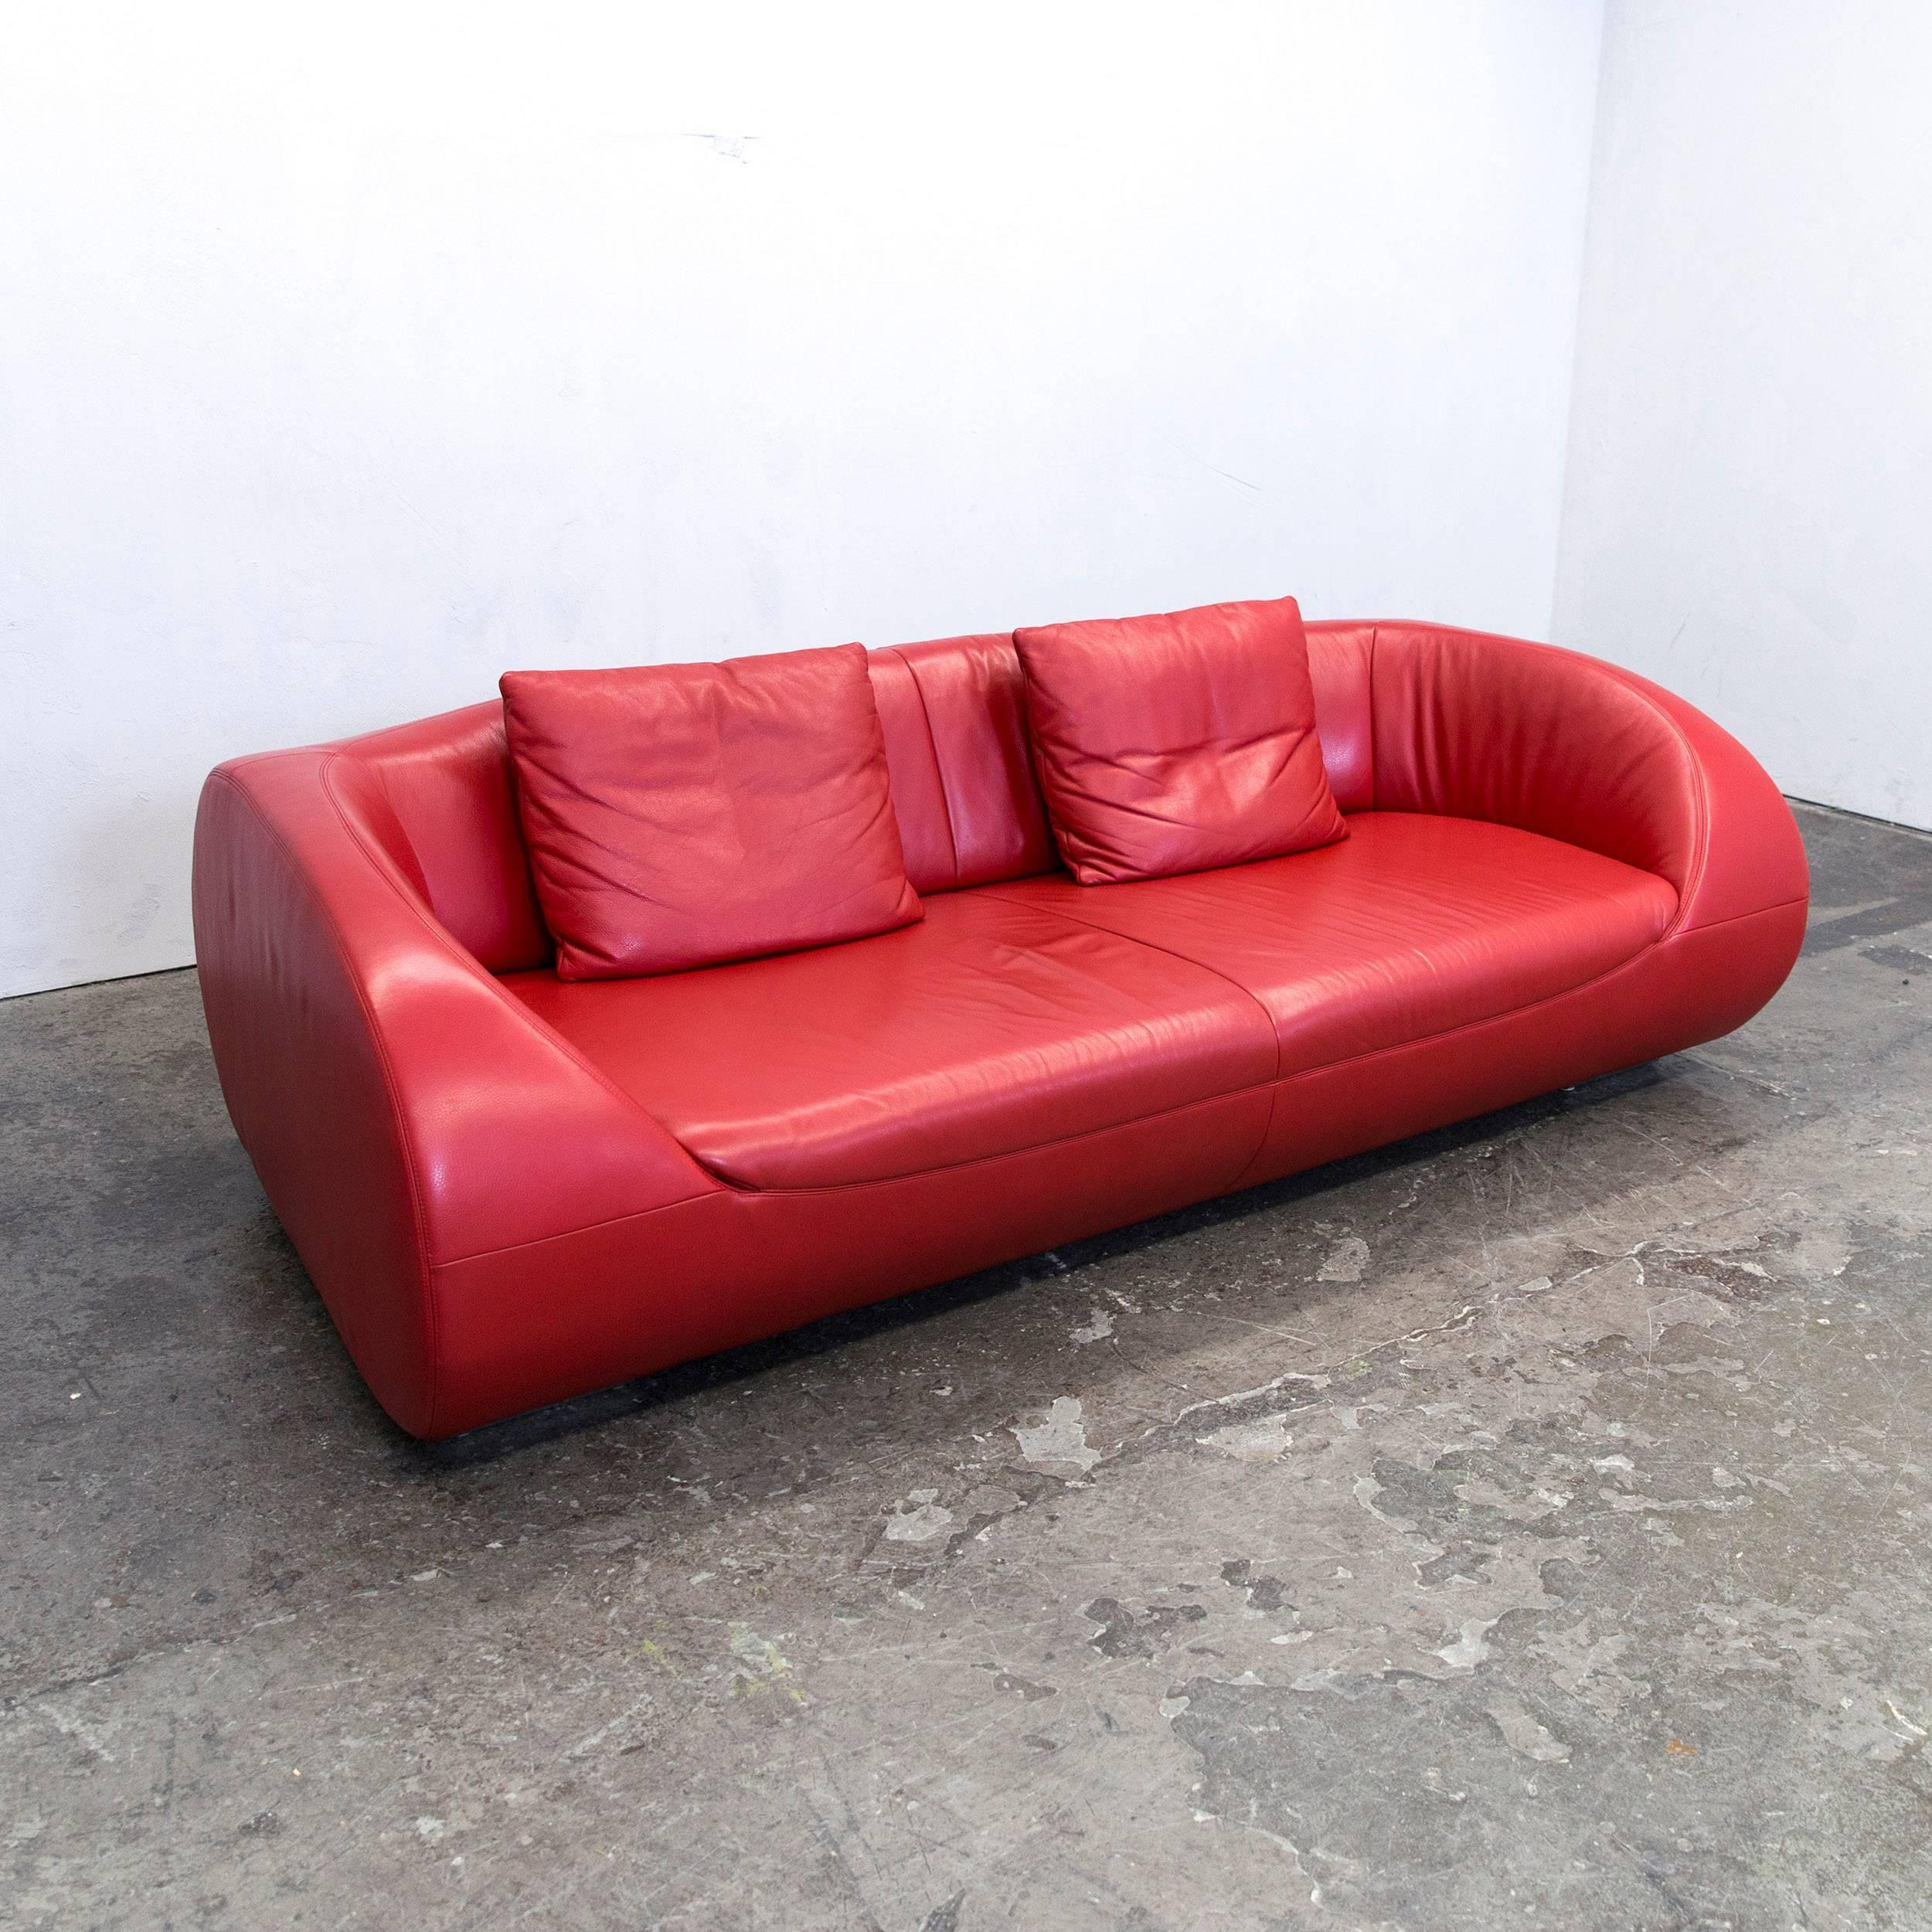 Koinor Designer Sofa Leather Red Three Seat Couch Modern At 1stdibs